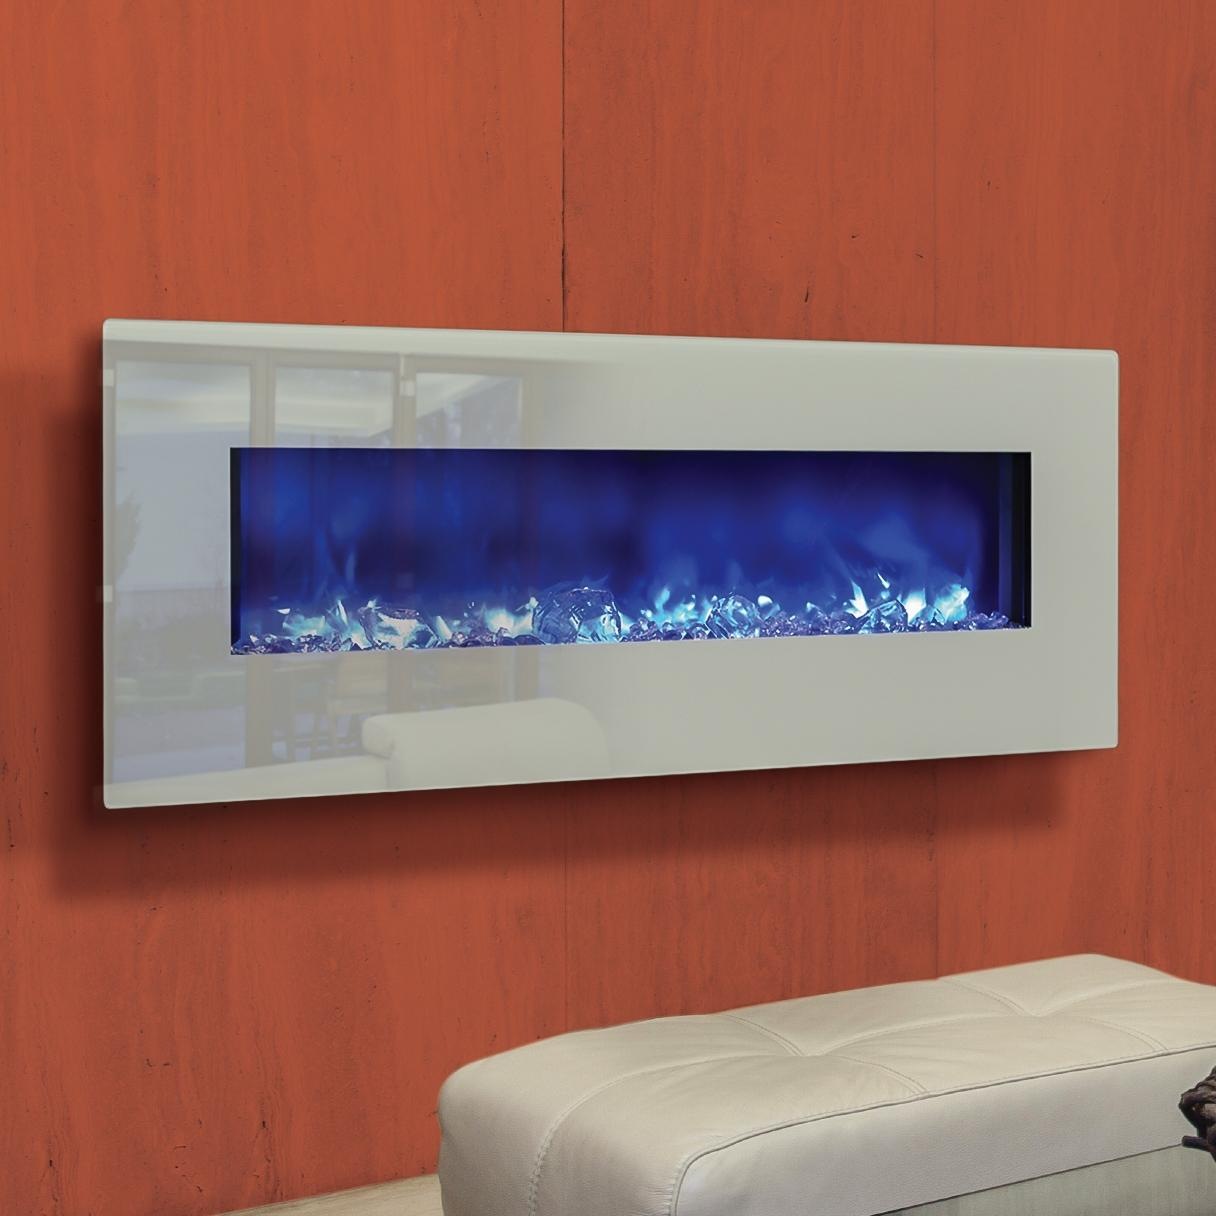 DISCOUNT AMANTII BUILT IN OR WALL MOUNT ELECTRIC FIREPLACES FIREPLACESRUS.NET